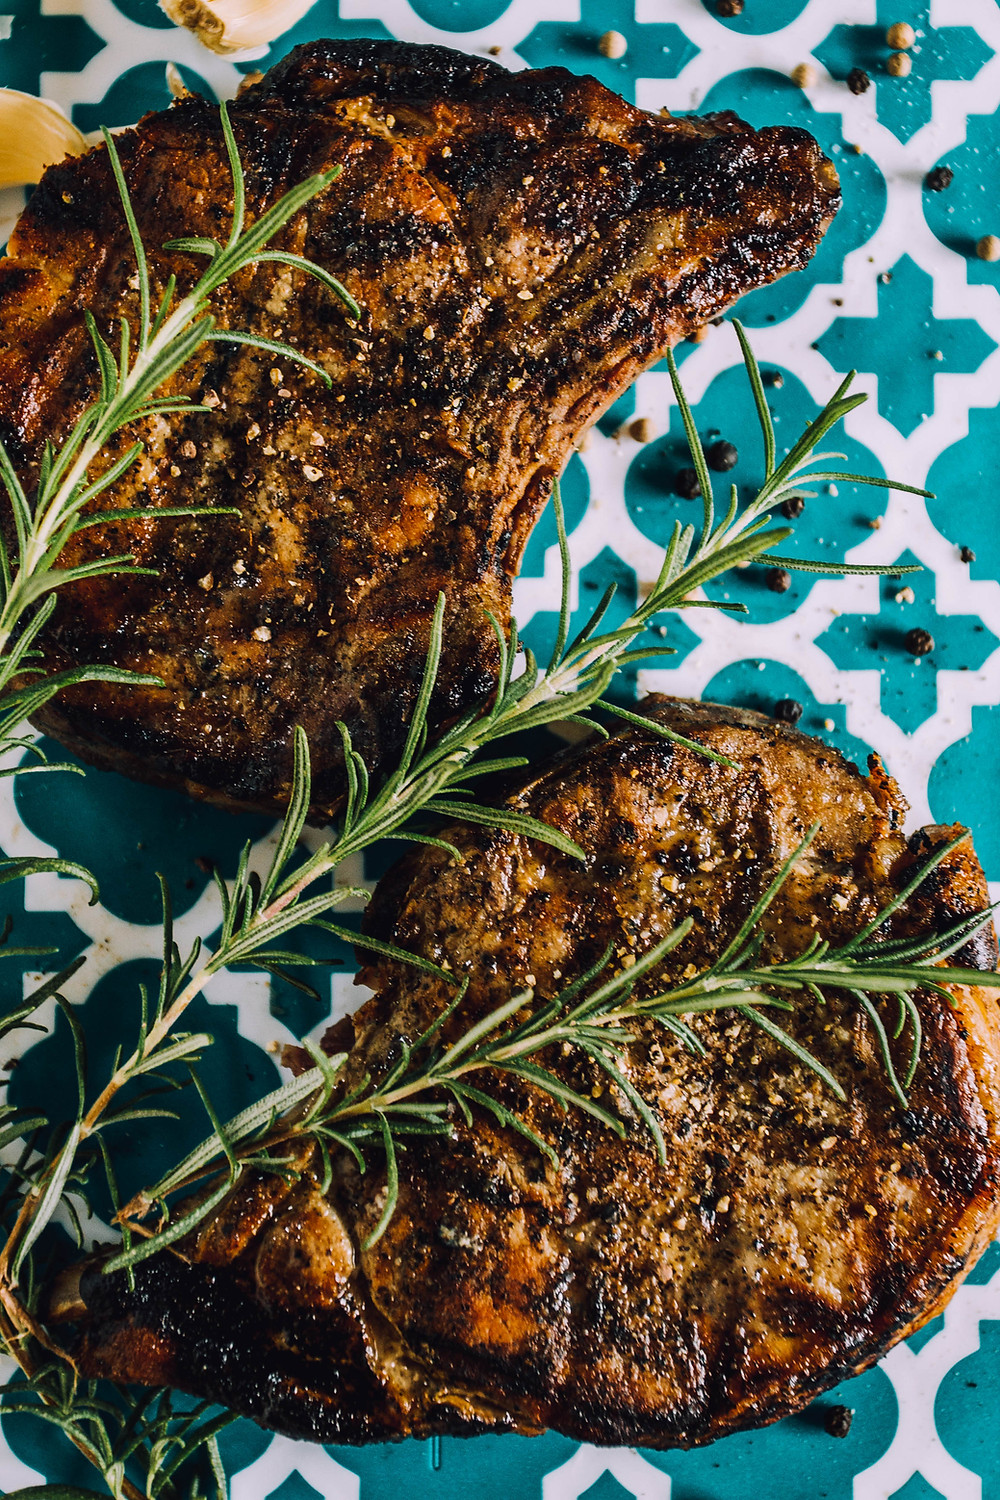 Grilled Pork Chops with rosemary garlic butter